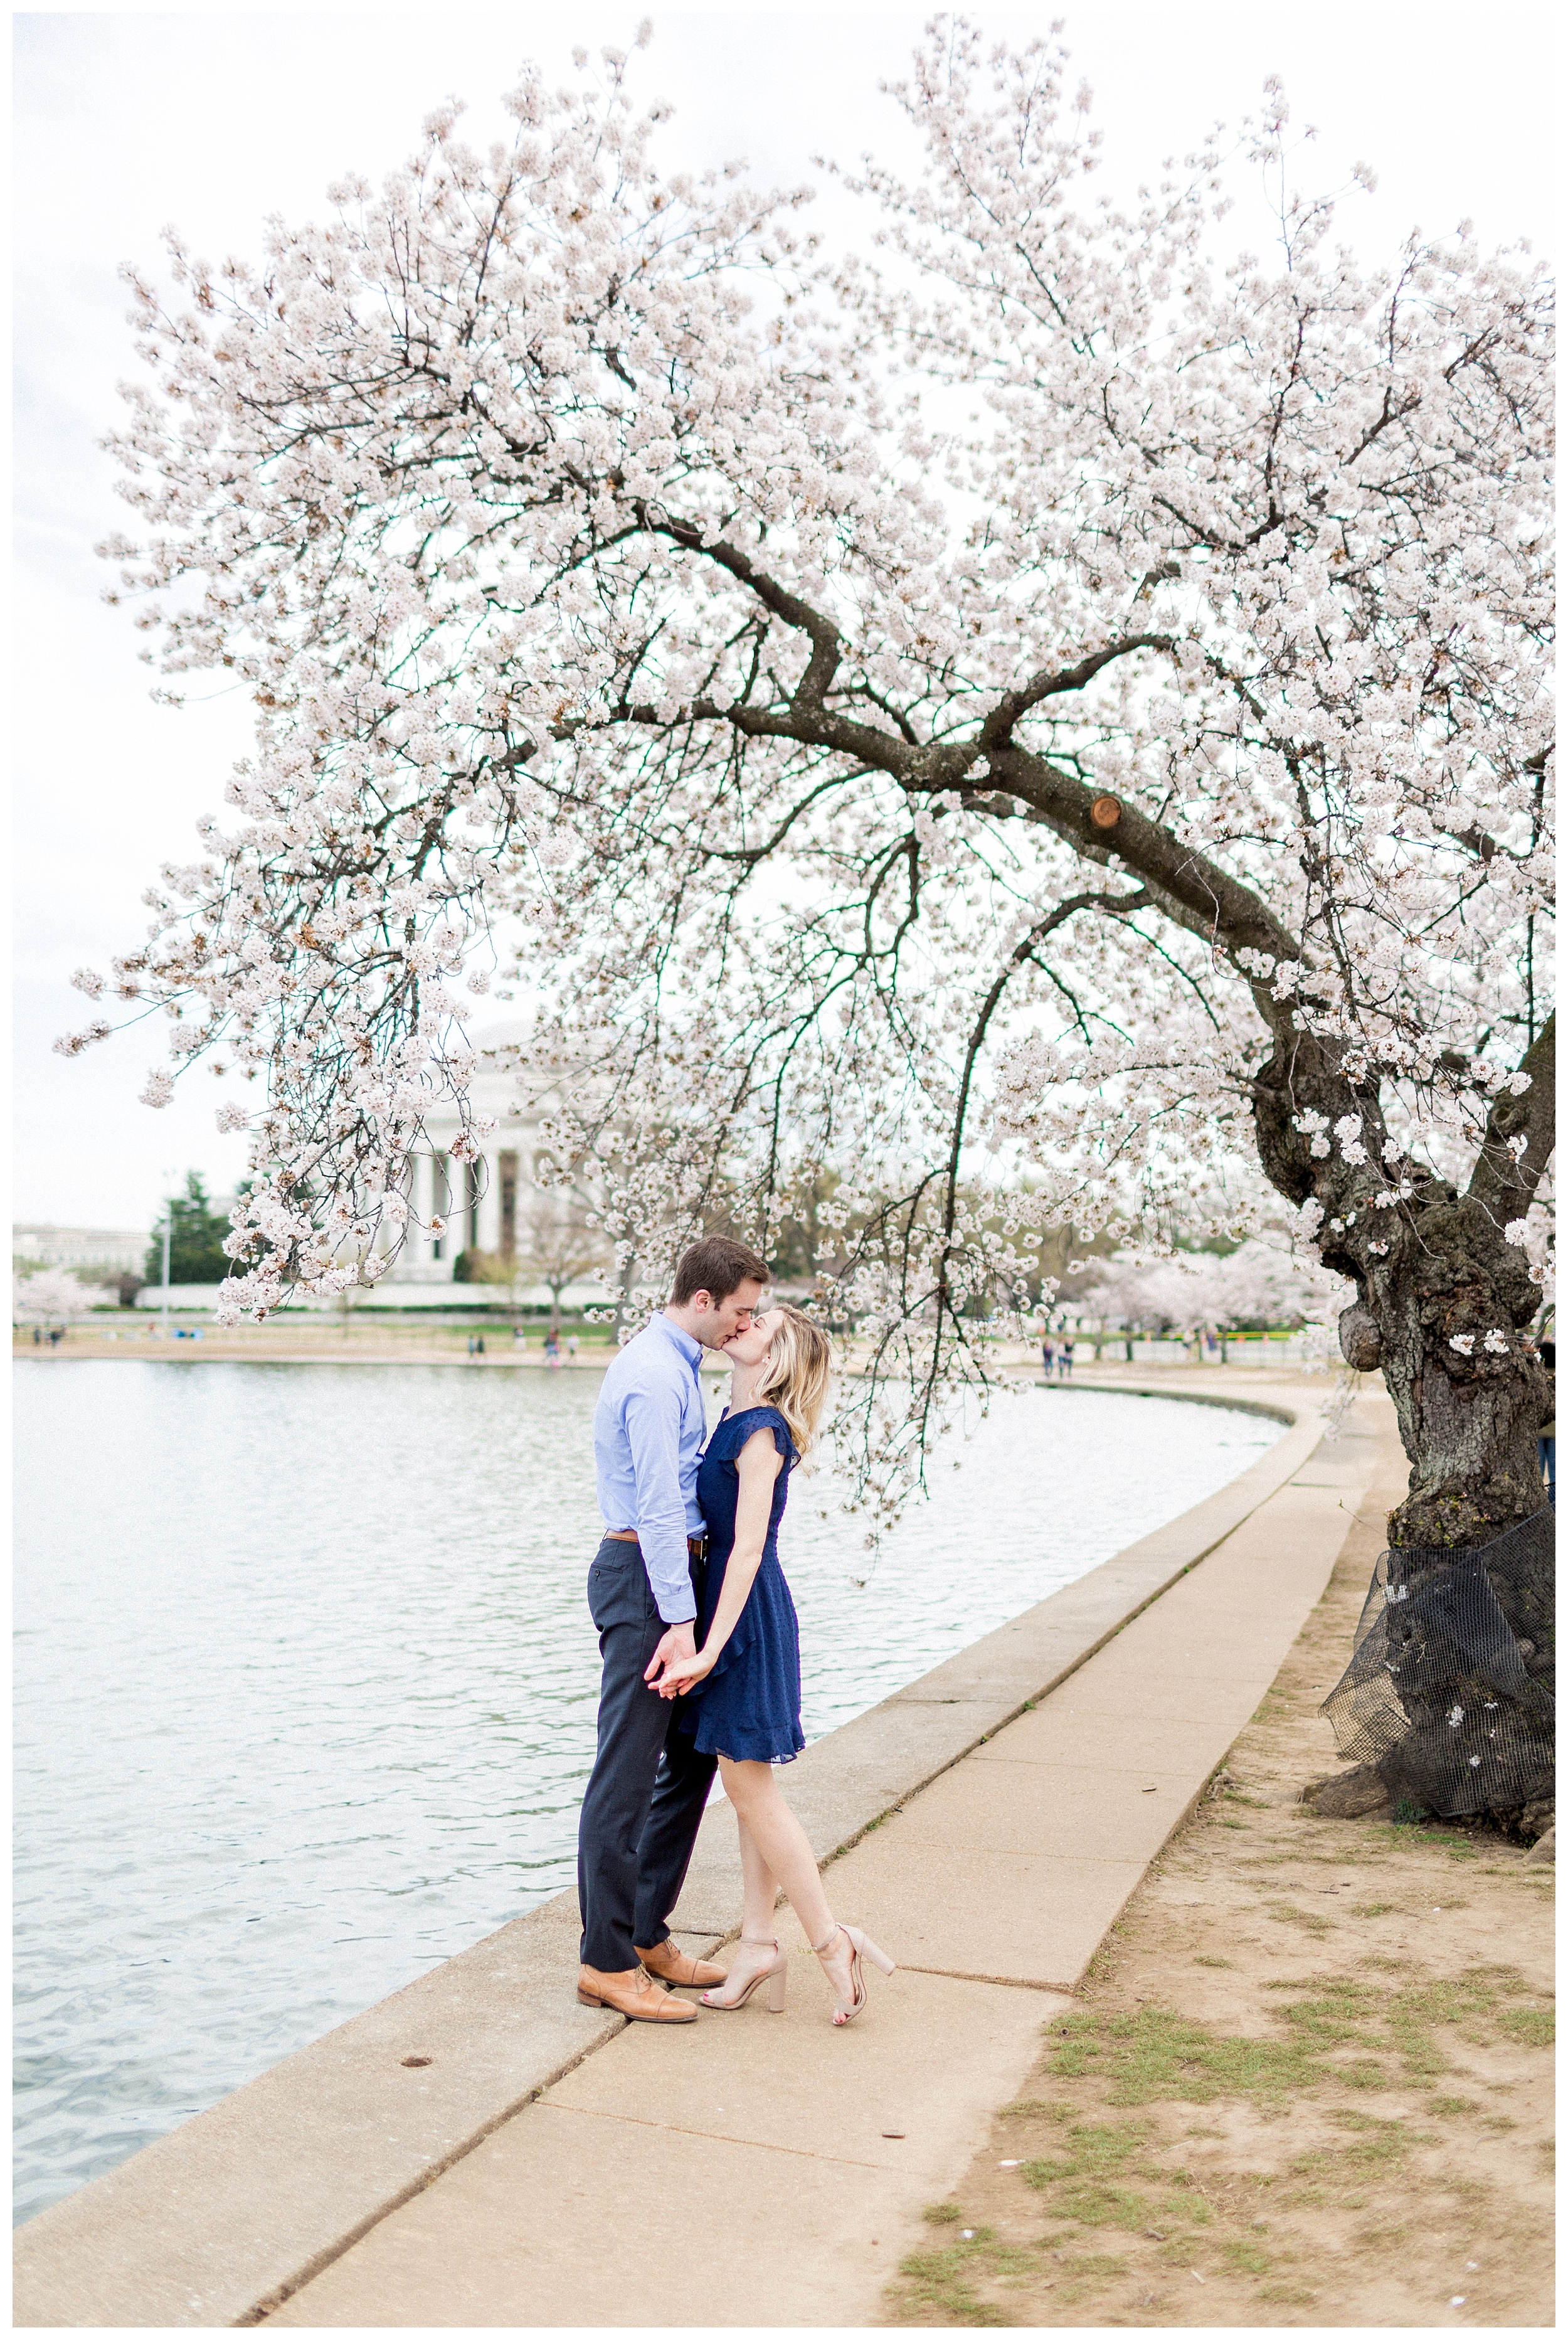 District of Columbia Cherry Blossom Engagement Session_0043.jpg